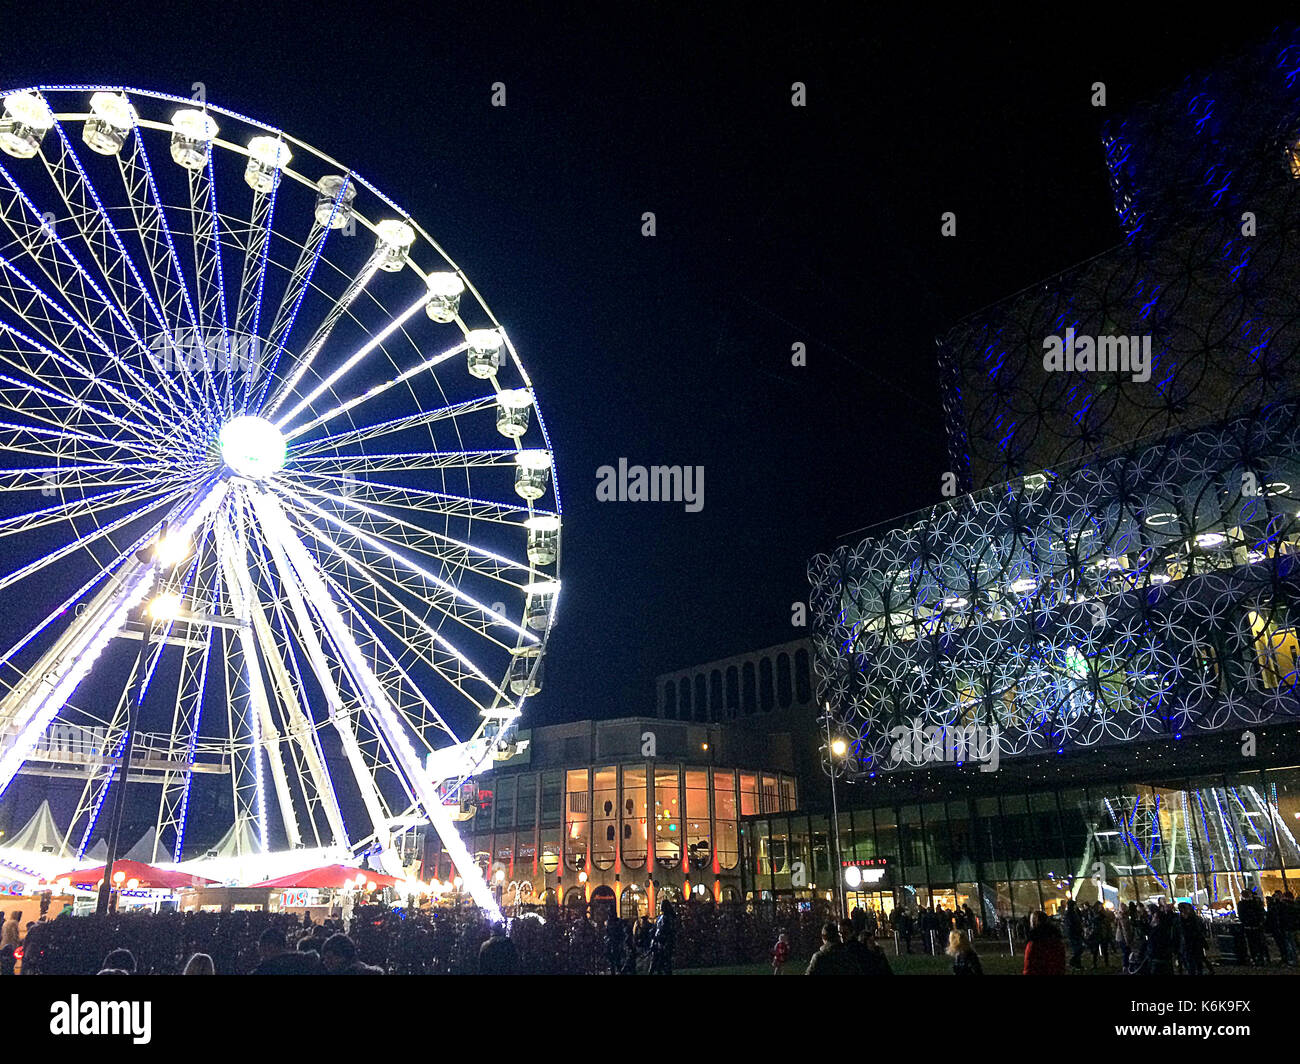 Big Wheel, Birmingham UK 2016 Stock Photo